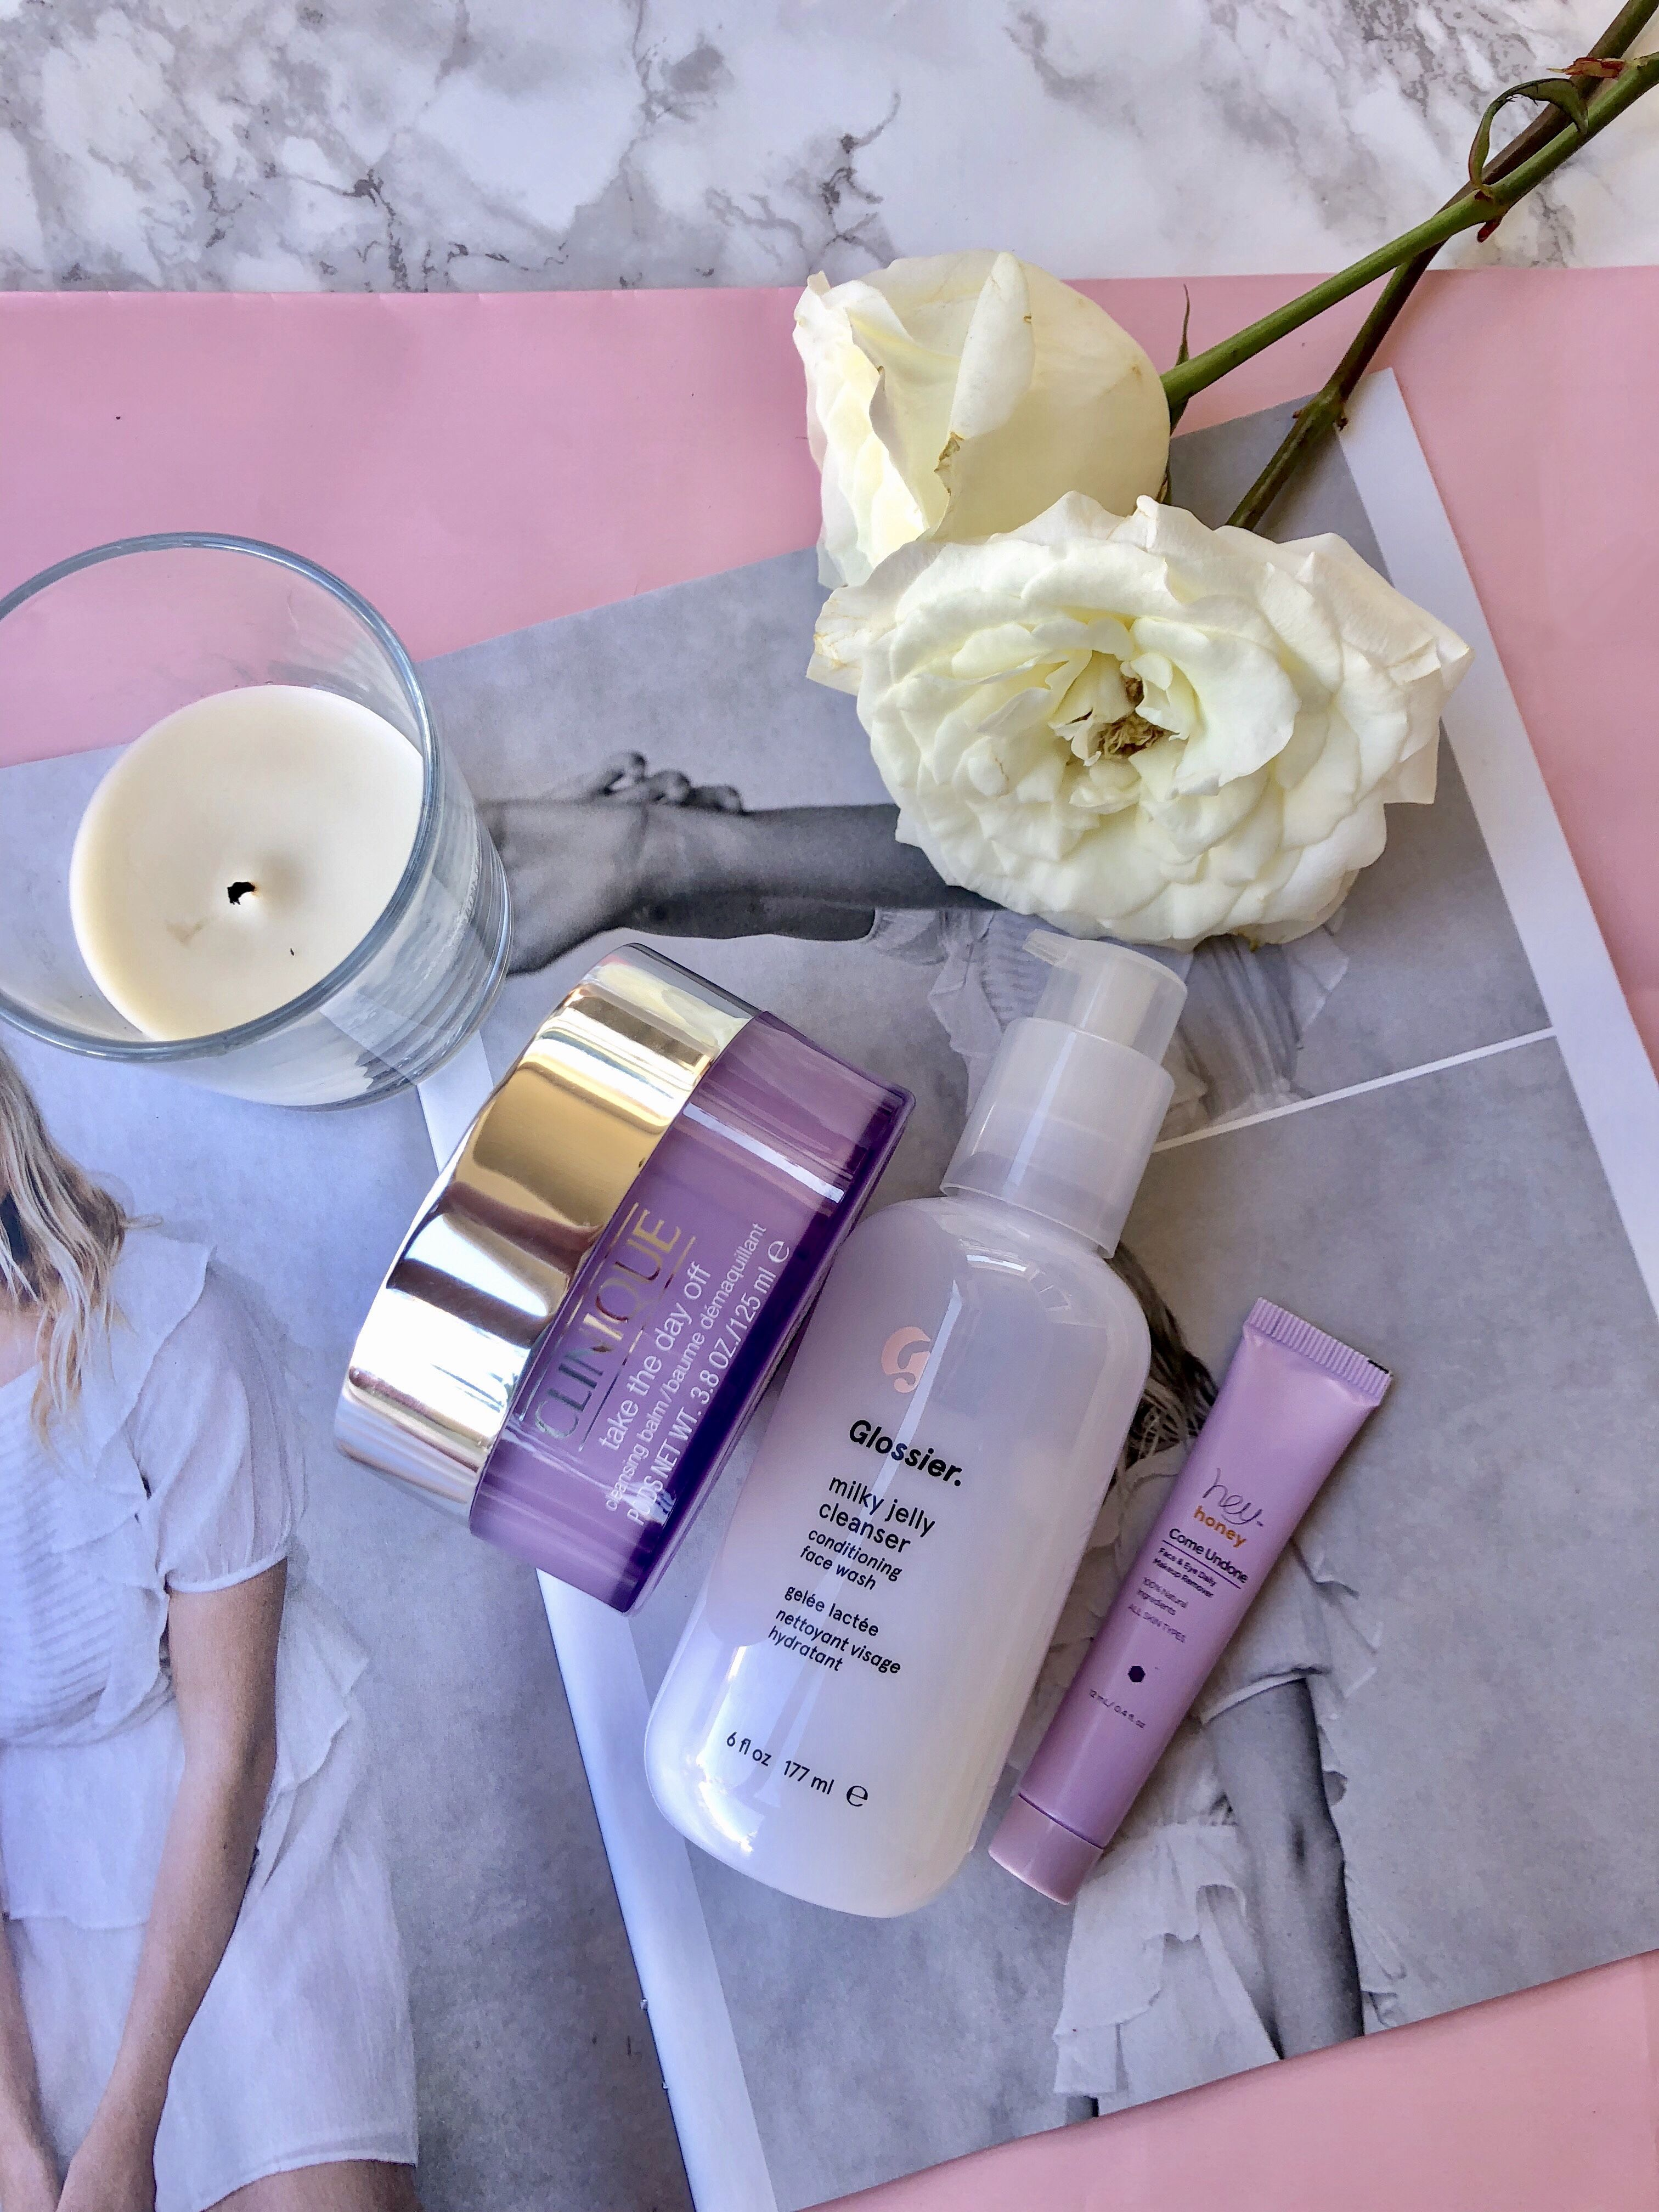 Find out which makeup remover balm I LOVE the best